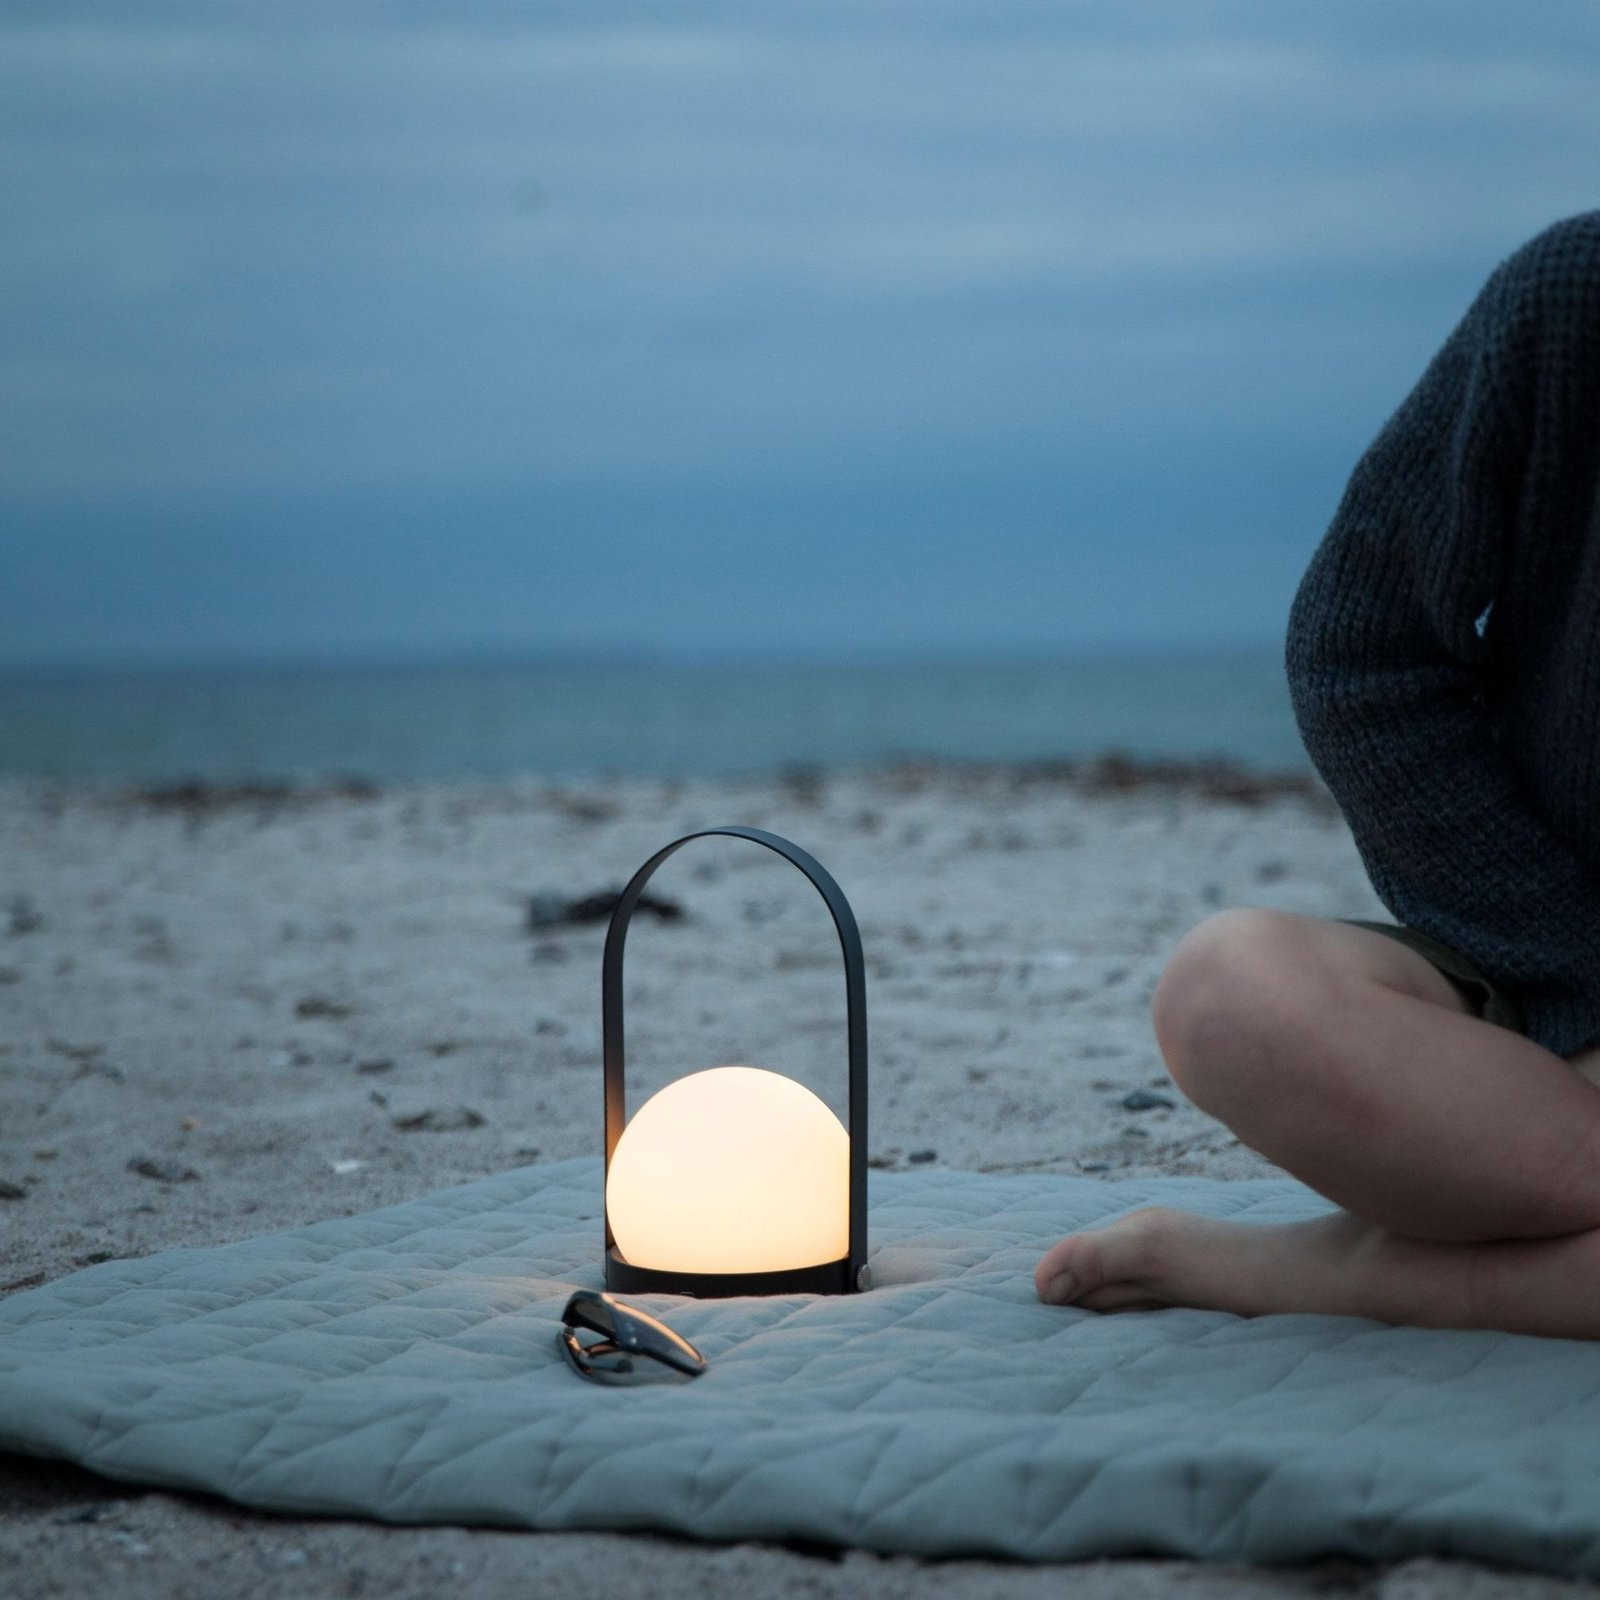 Outdoor  Photo 7 of 7 in Extend Your Time Outside With These 6 Innovative Outdoor Lights